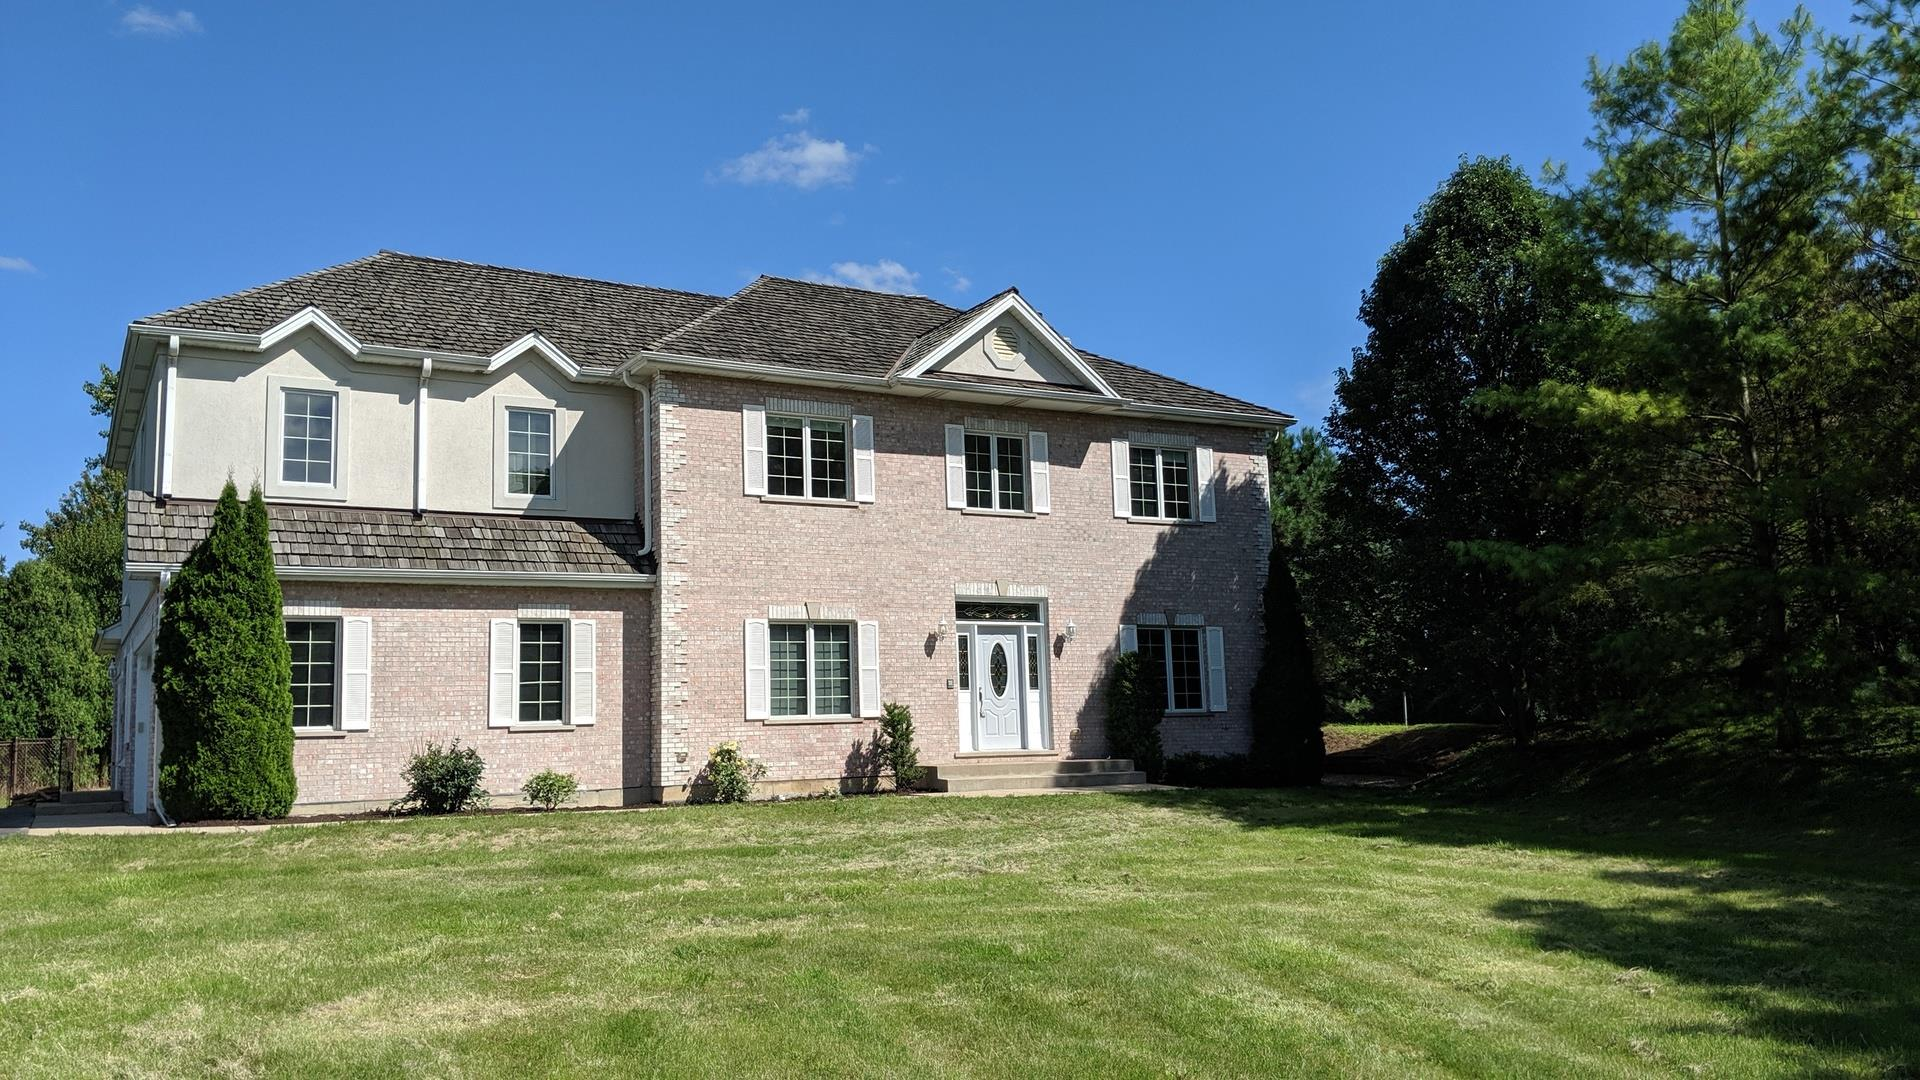 2604 Cuhlman Road, McHenry, IL 60051 - #: 10651259